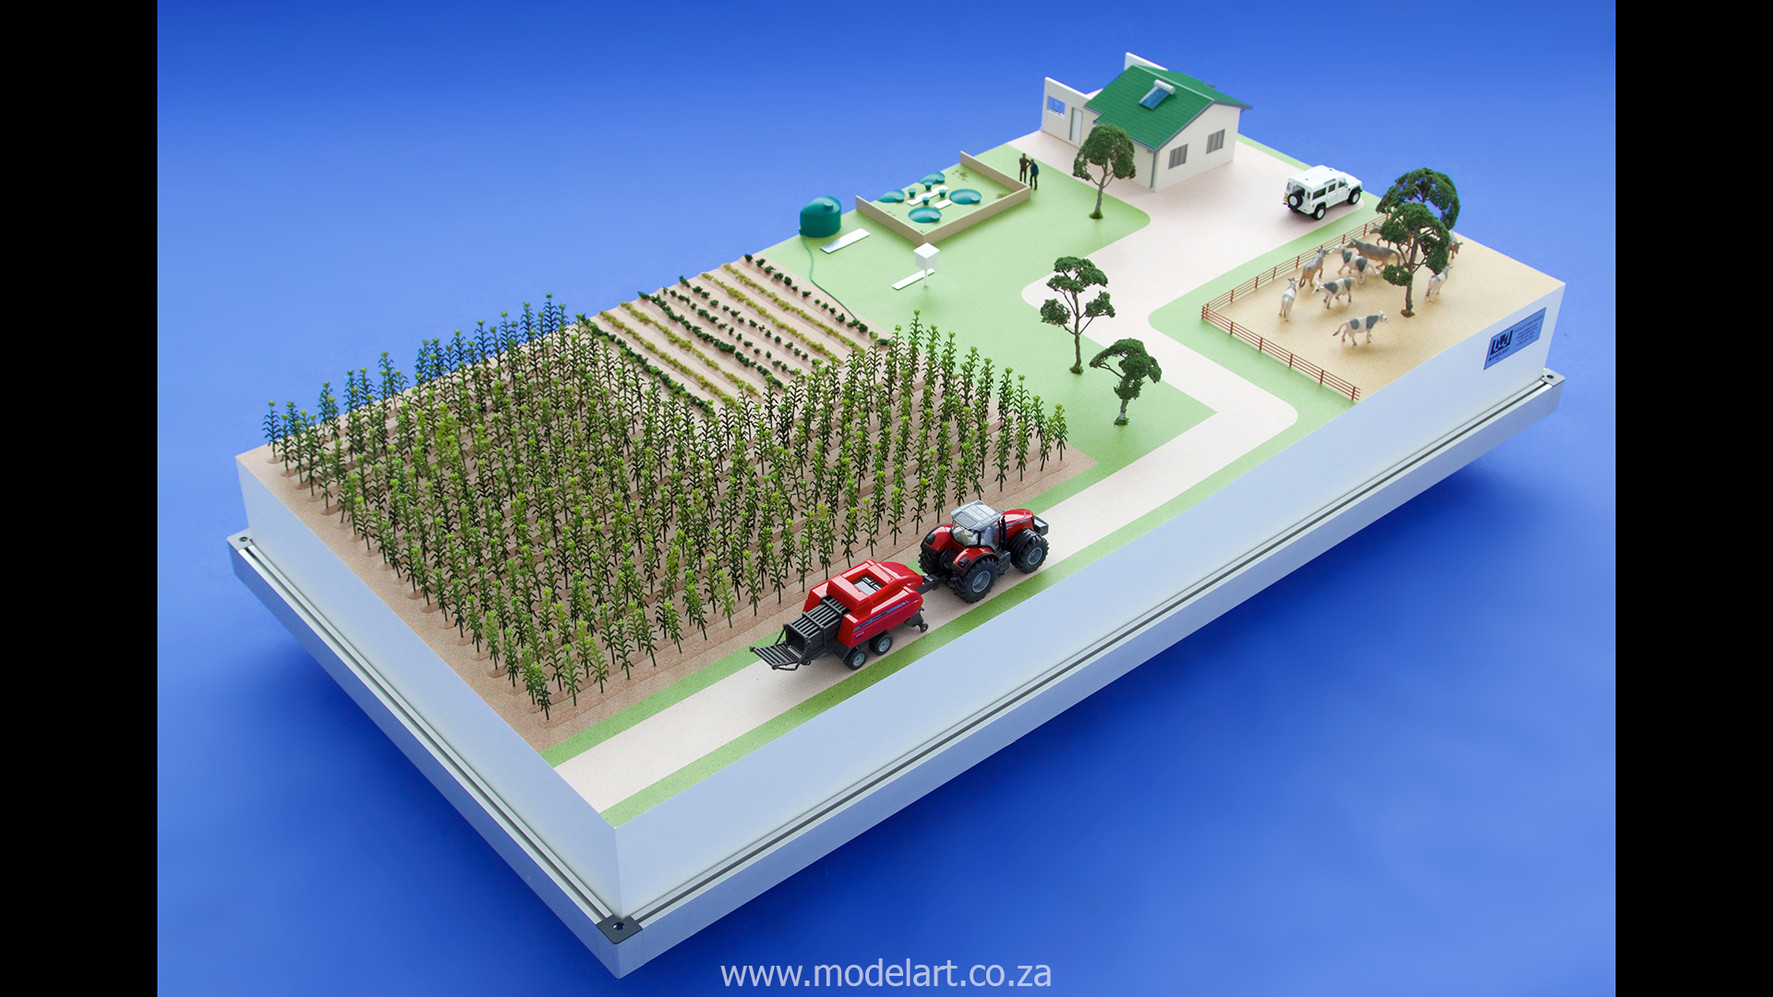 Architectural-Scale-Model-Industrial-Afgri Biogas-3